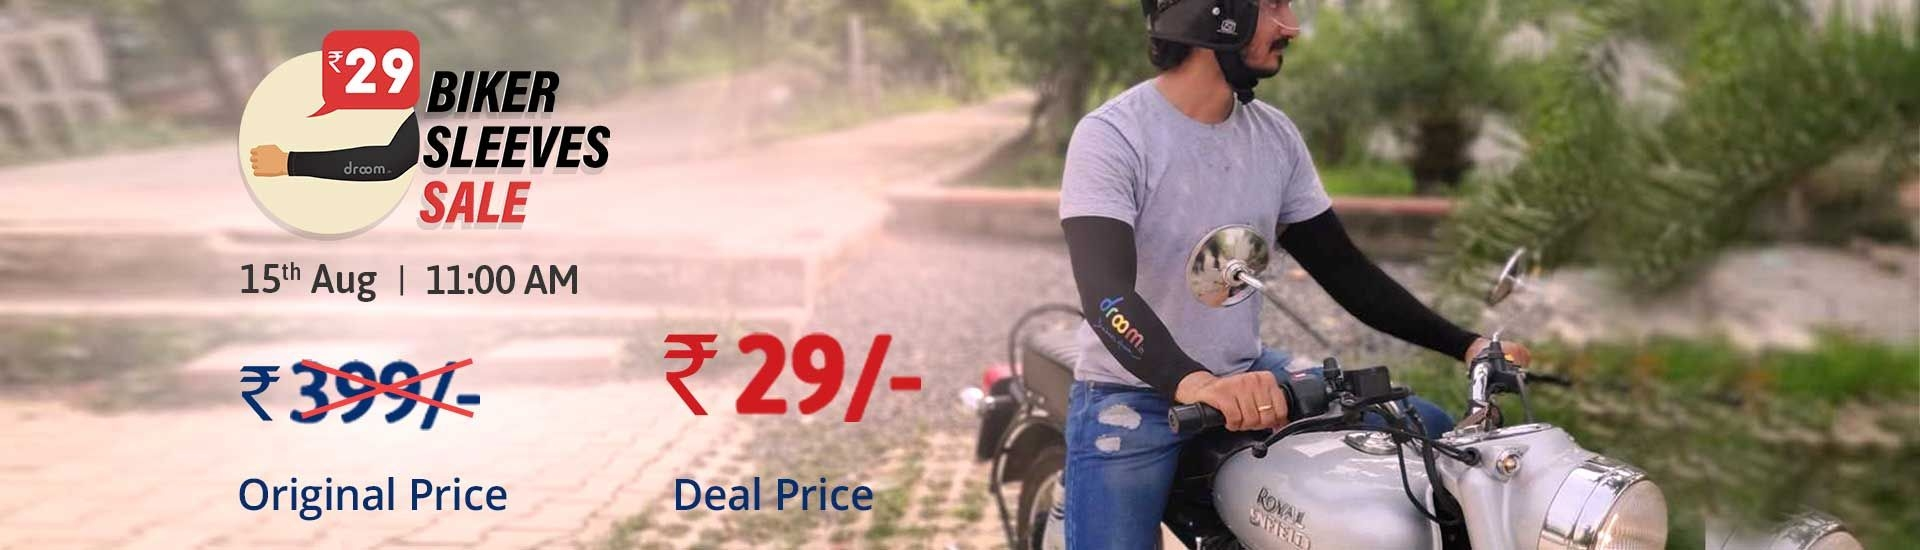 Droom – Biker Sleeves Sale